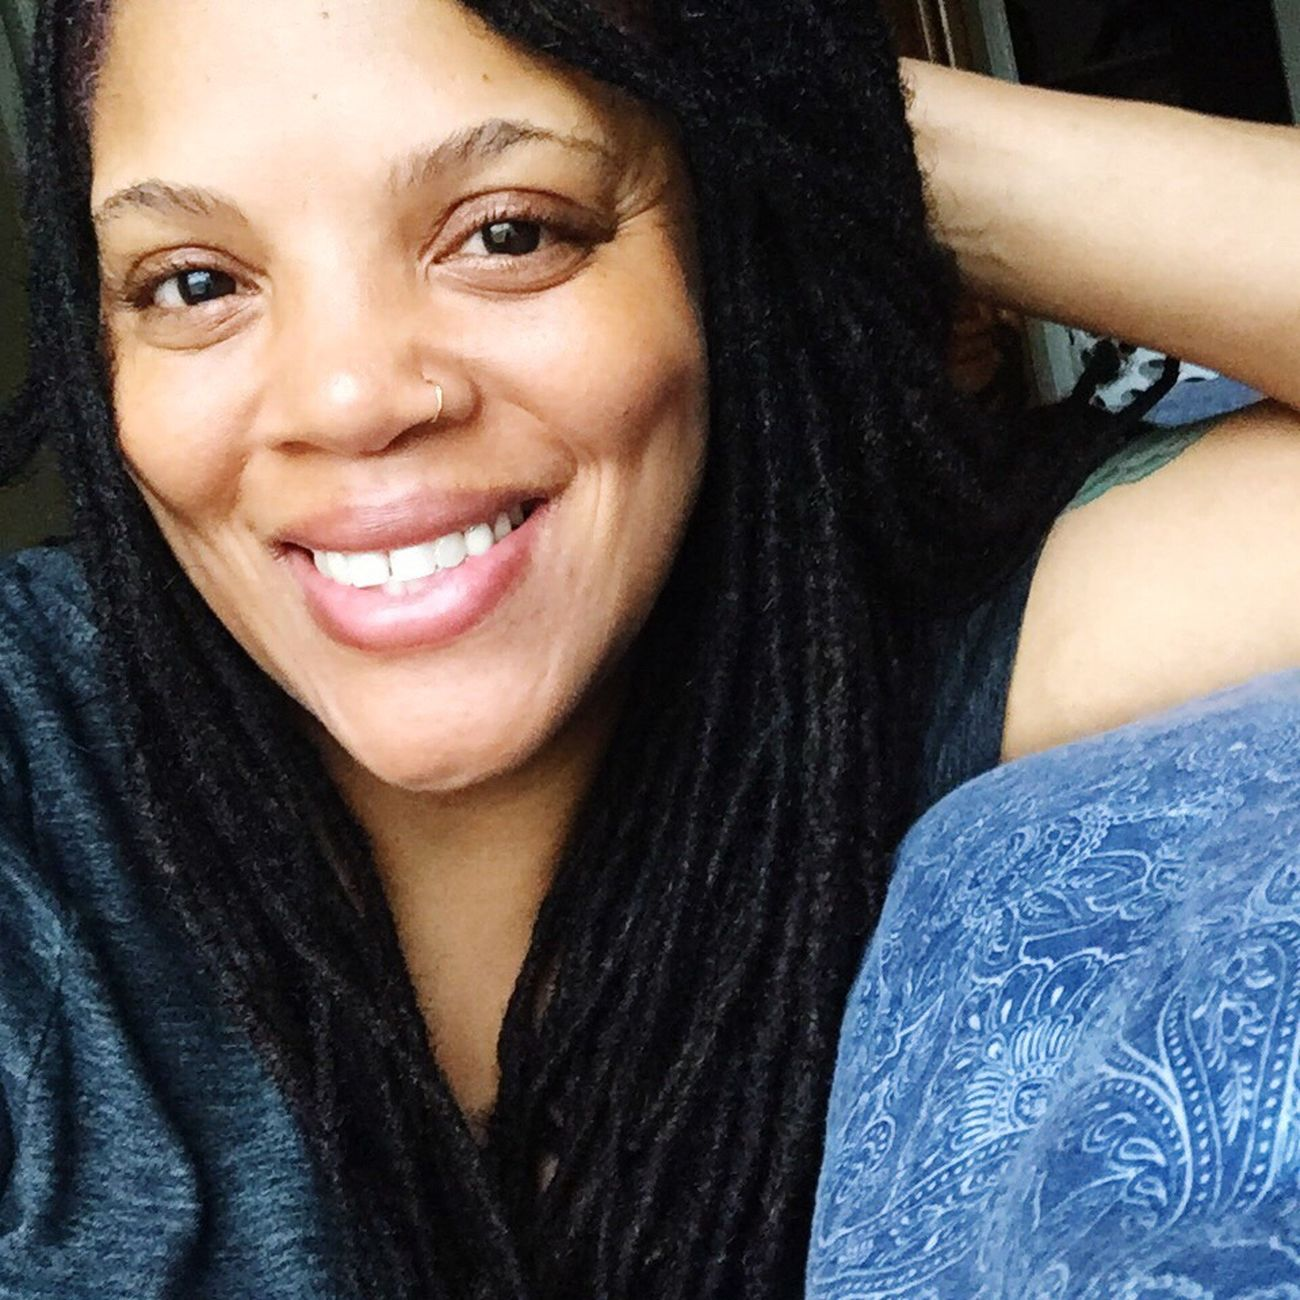 Saturday evening.... That's Me From Today Relaxing Enjoying Life Locs Empress Lioness Taking Photos Natural Beauty